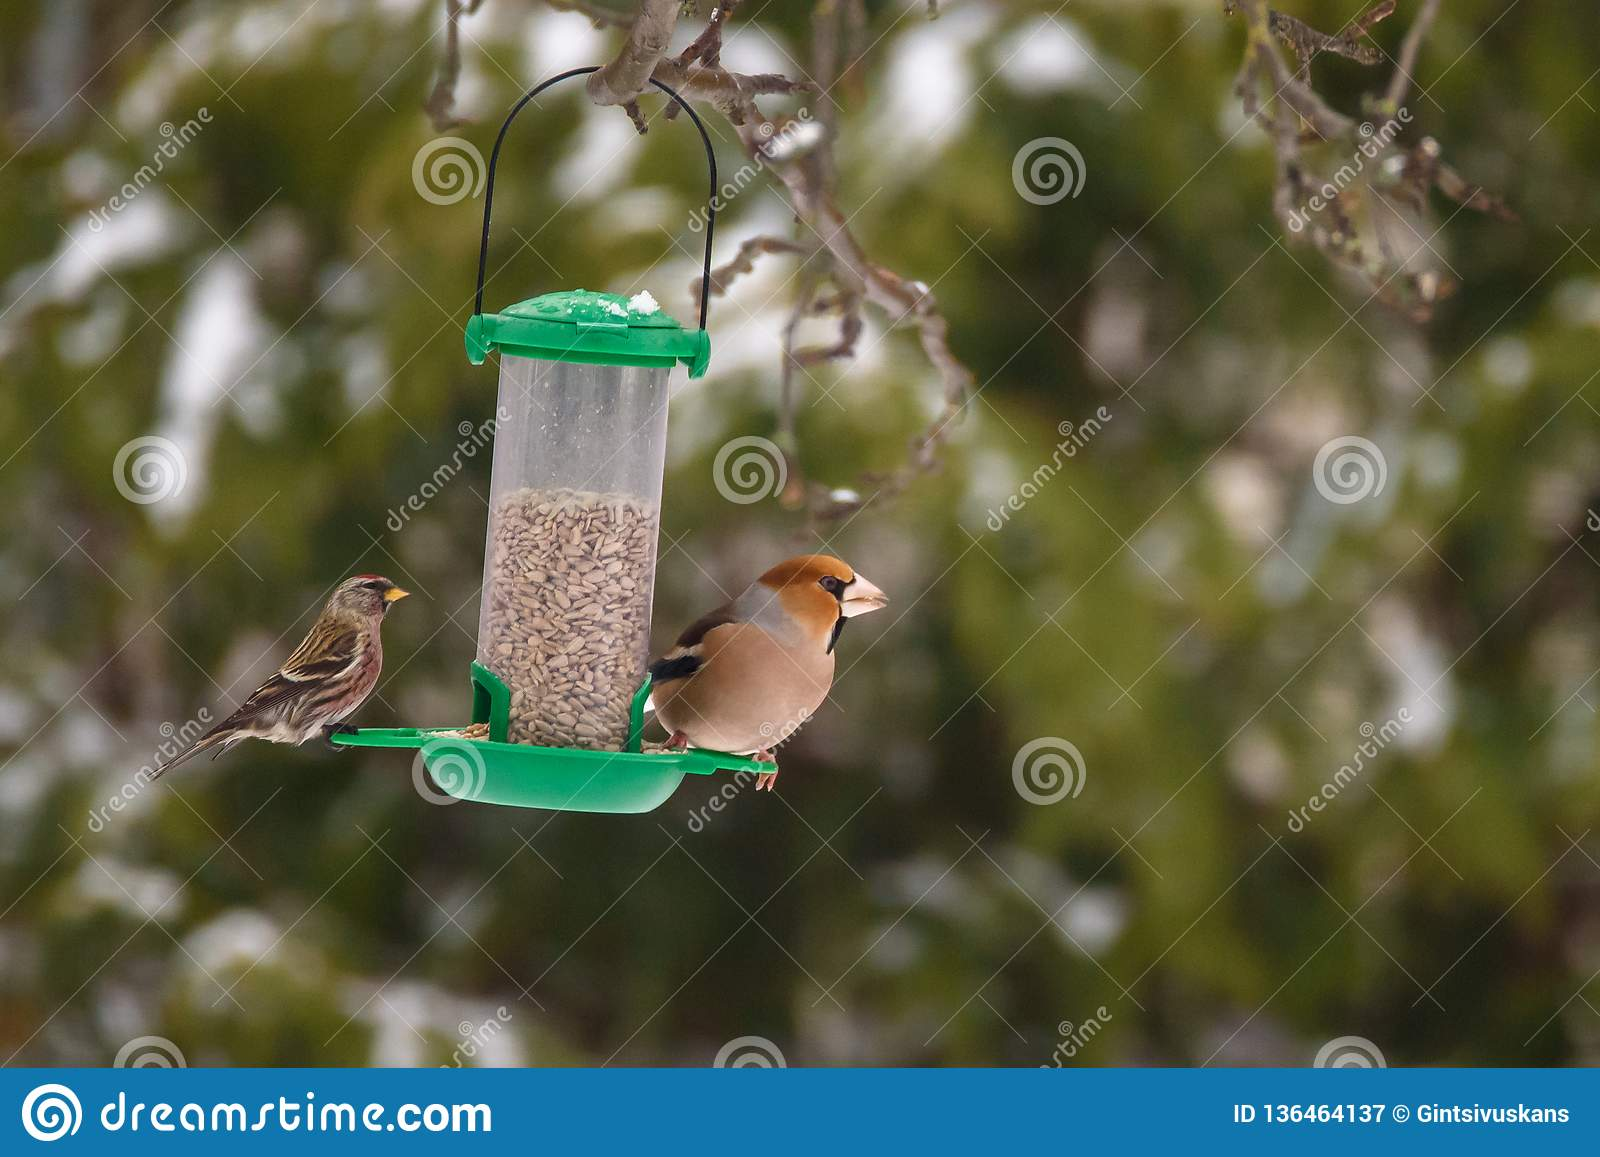 Gemeines Redpoll Acanthis-flammea und Hawfinchvogel Coccothraustes Coccothraustes